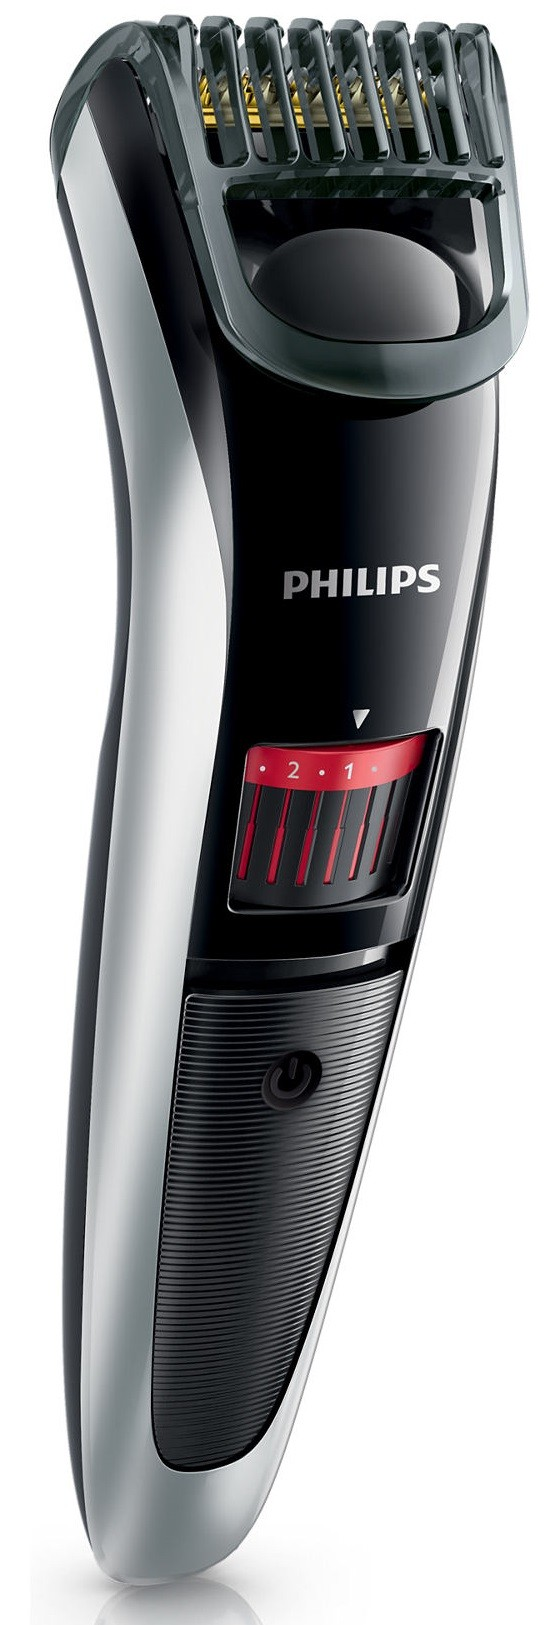 PHILIPS - QT 4013/16